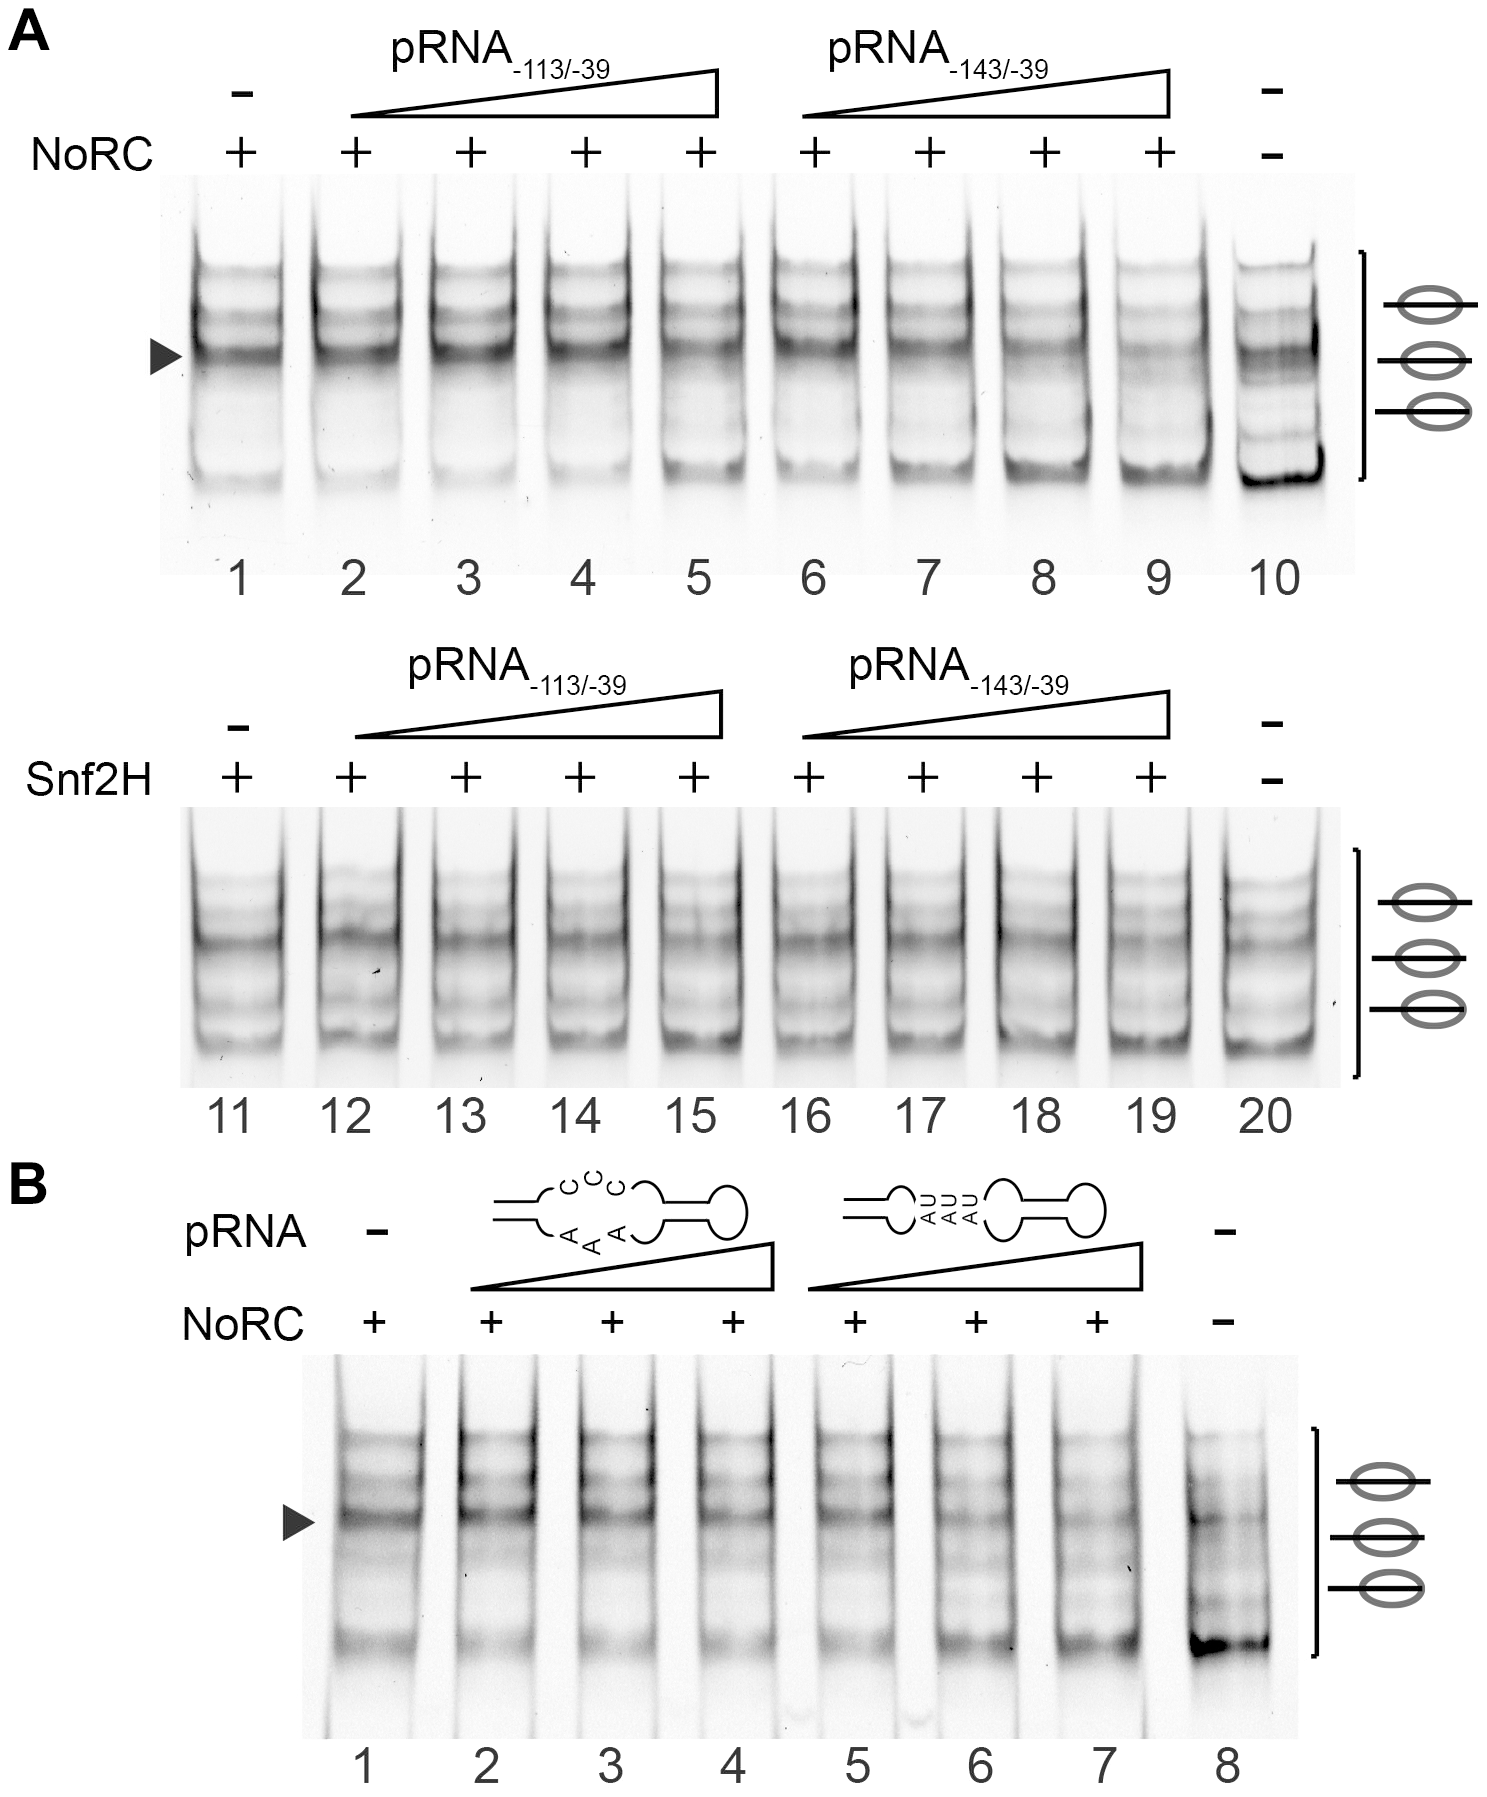 pRNA inhibits the activity of NoRC.